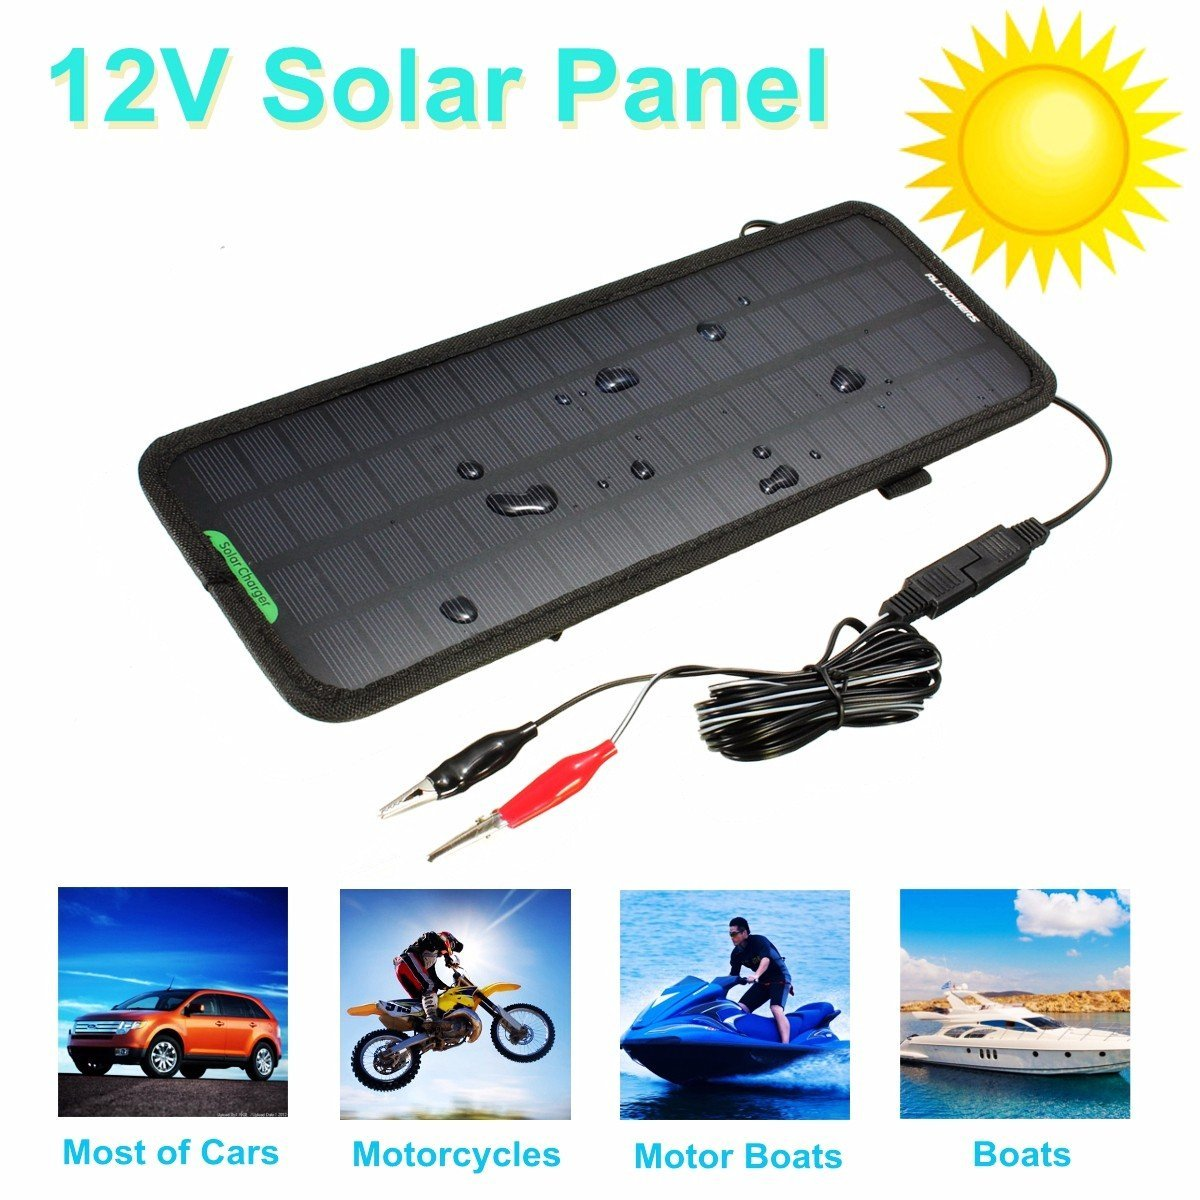 AUDEW 12V 4.5W Battery Charger Portable Car Power Solar Panel Battery Backup Charger For Car/ Boat Snowmobiles/Tractors/Camping/Motorcycles